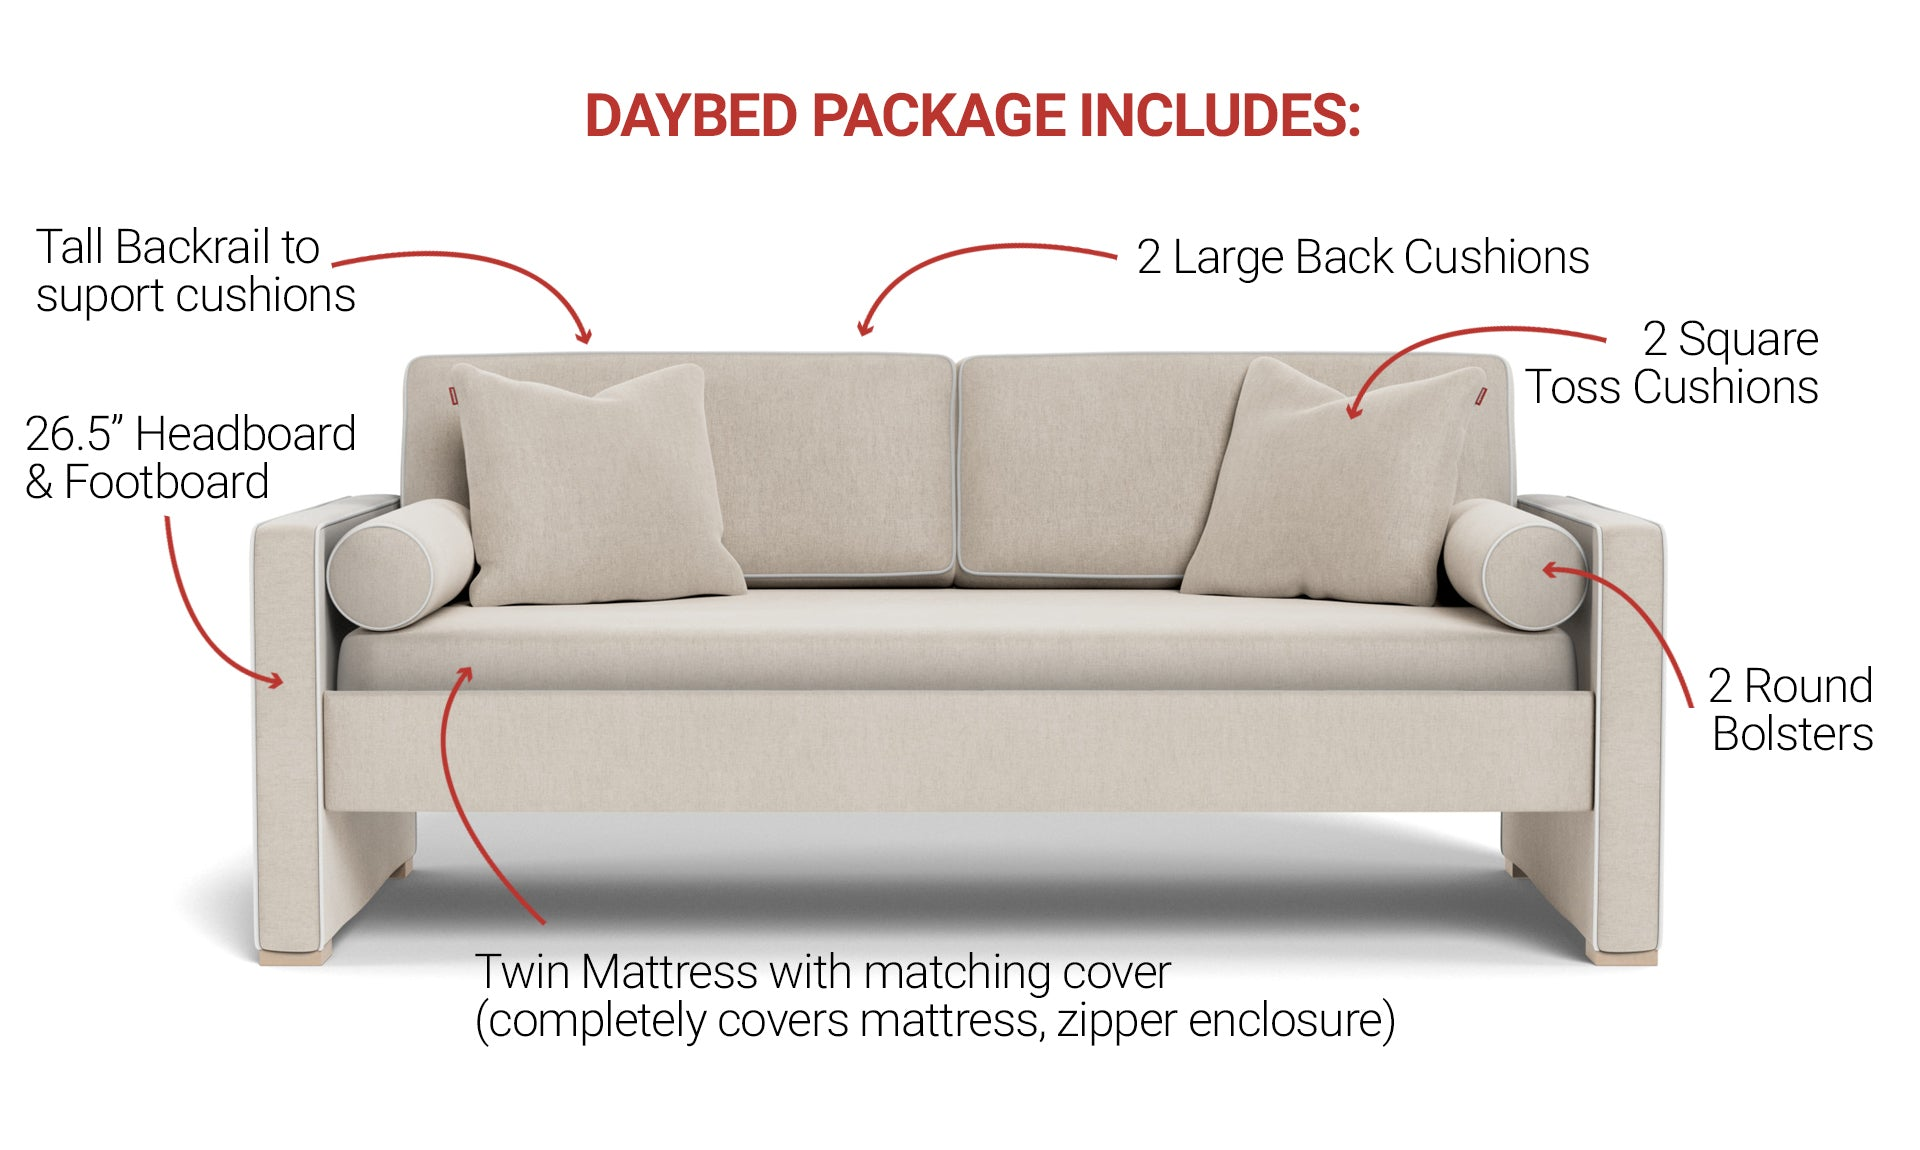 Dorma Twin DayBed - modern day bed sofa combination